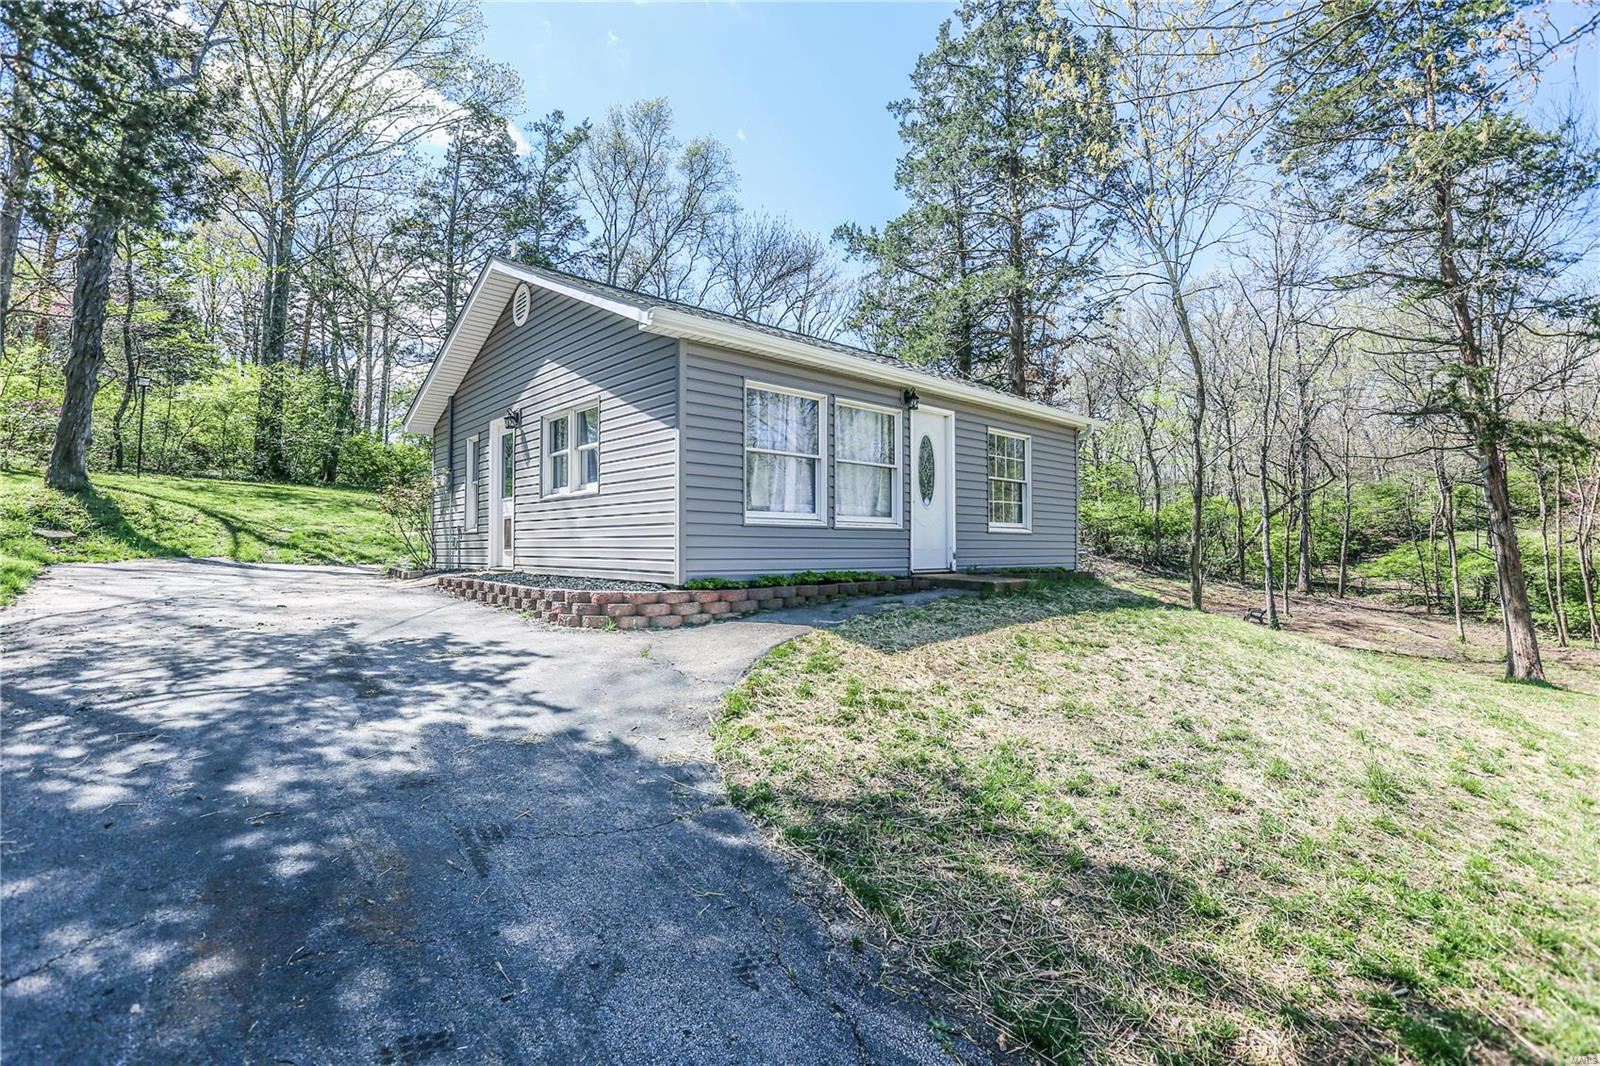 2354 South Lakeshore Property Photo - Pacific, MO real estate listing